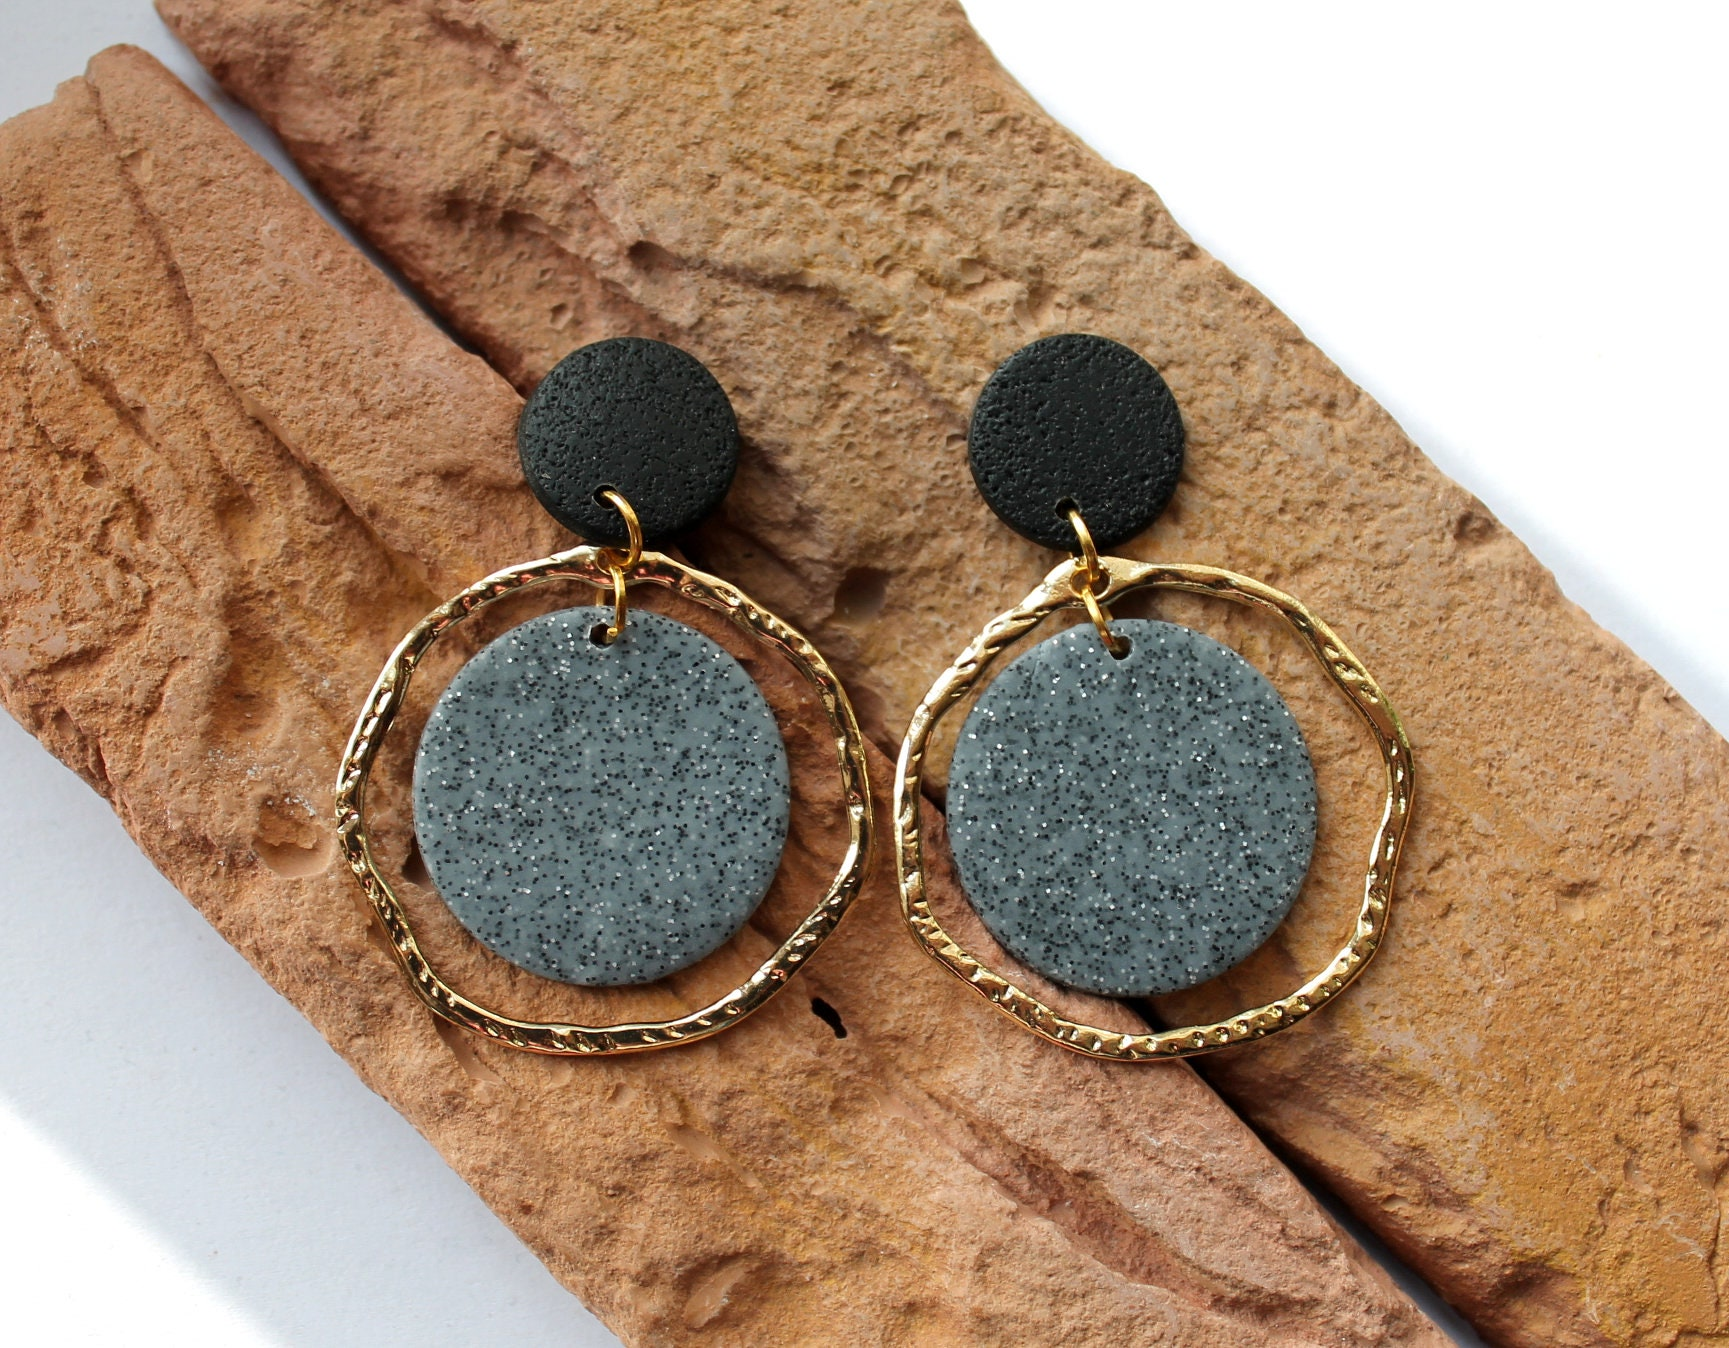 gifts for girls polymer jewelry gifts for women handmade jewelry black and brown dangles polymer clay earrings earring dangles